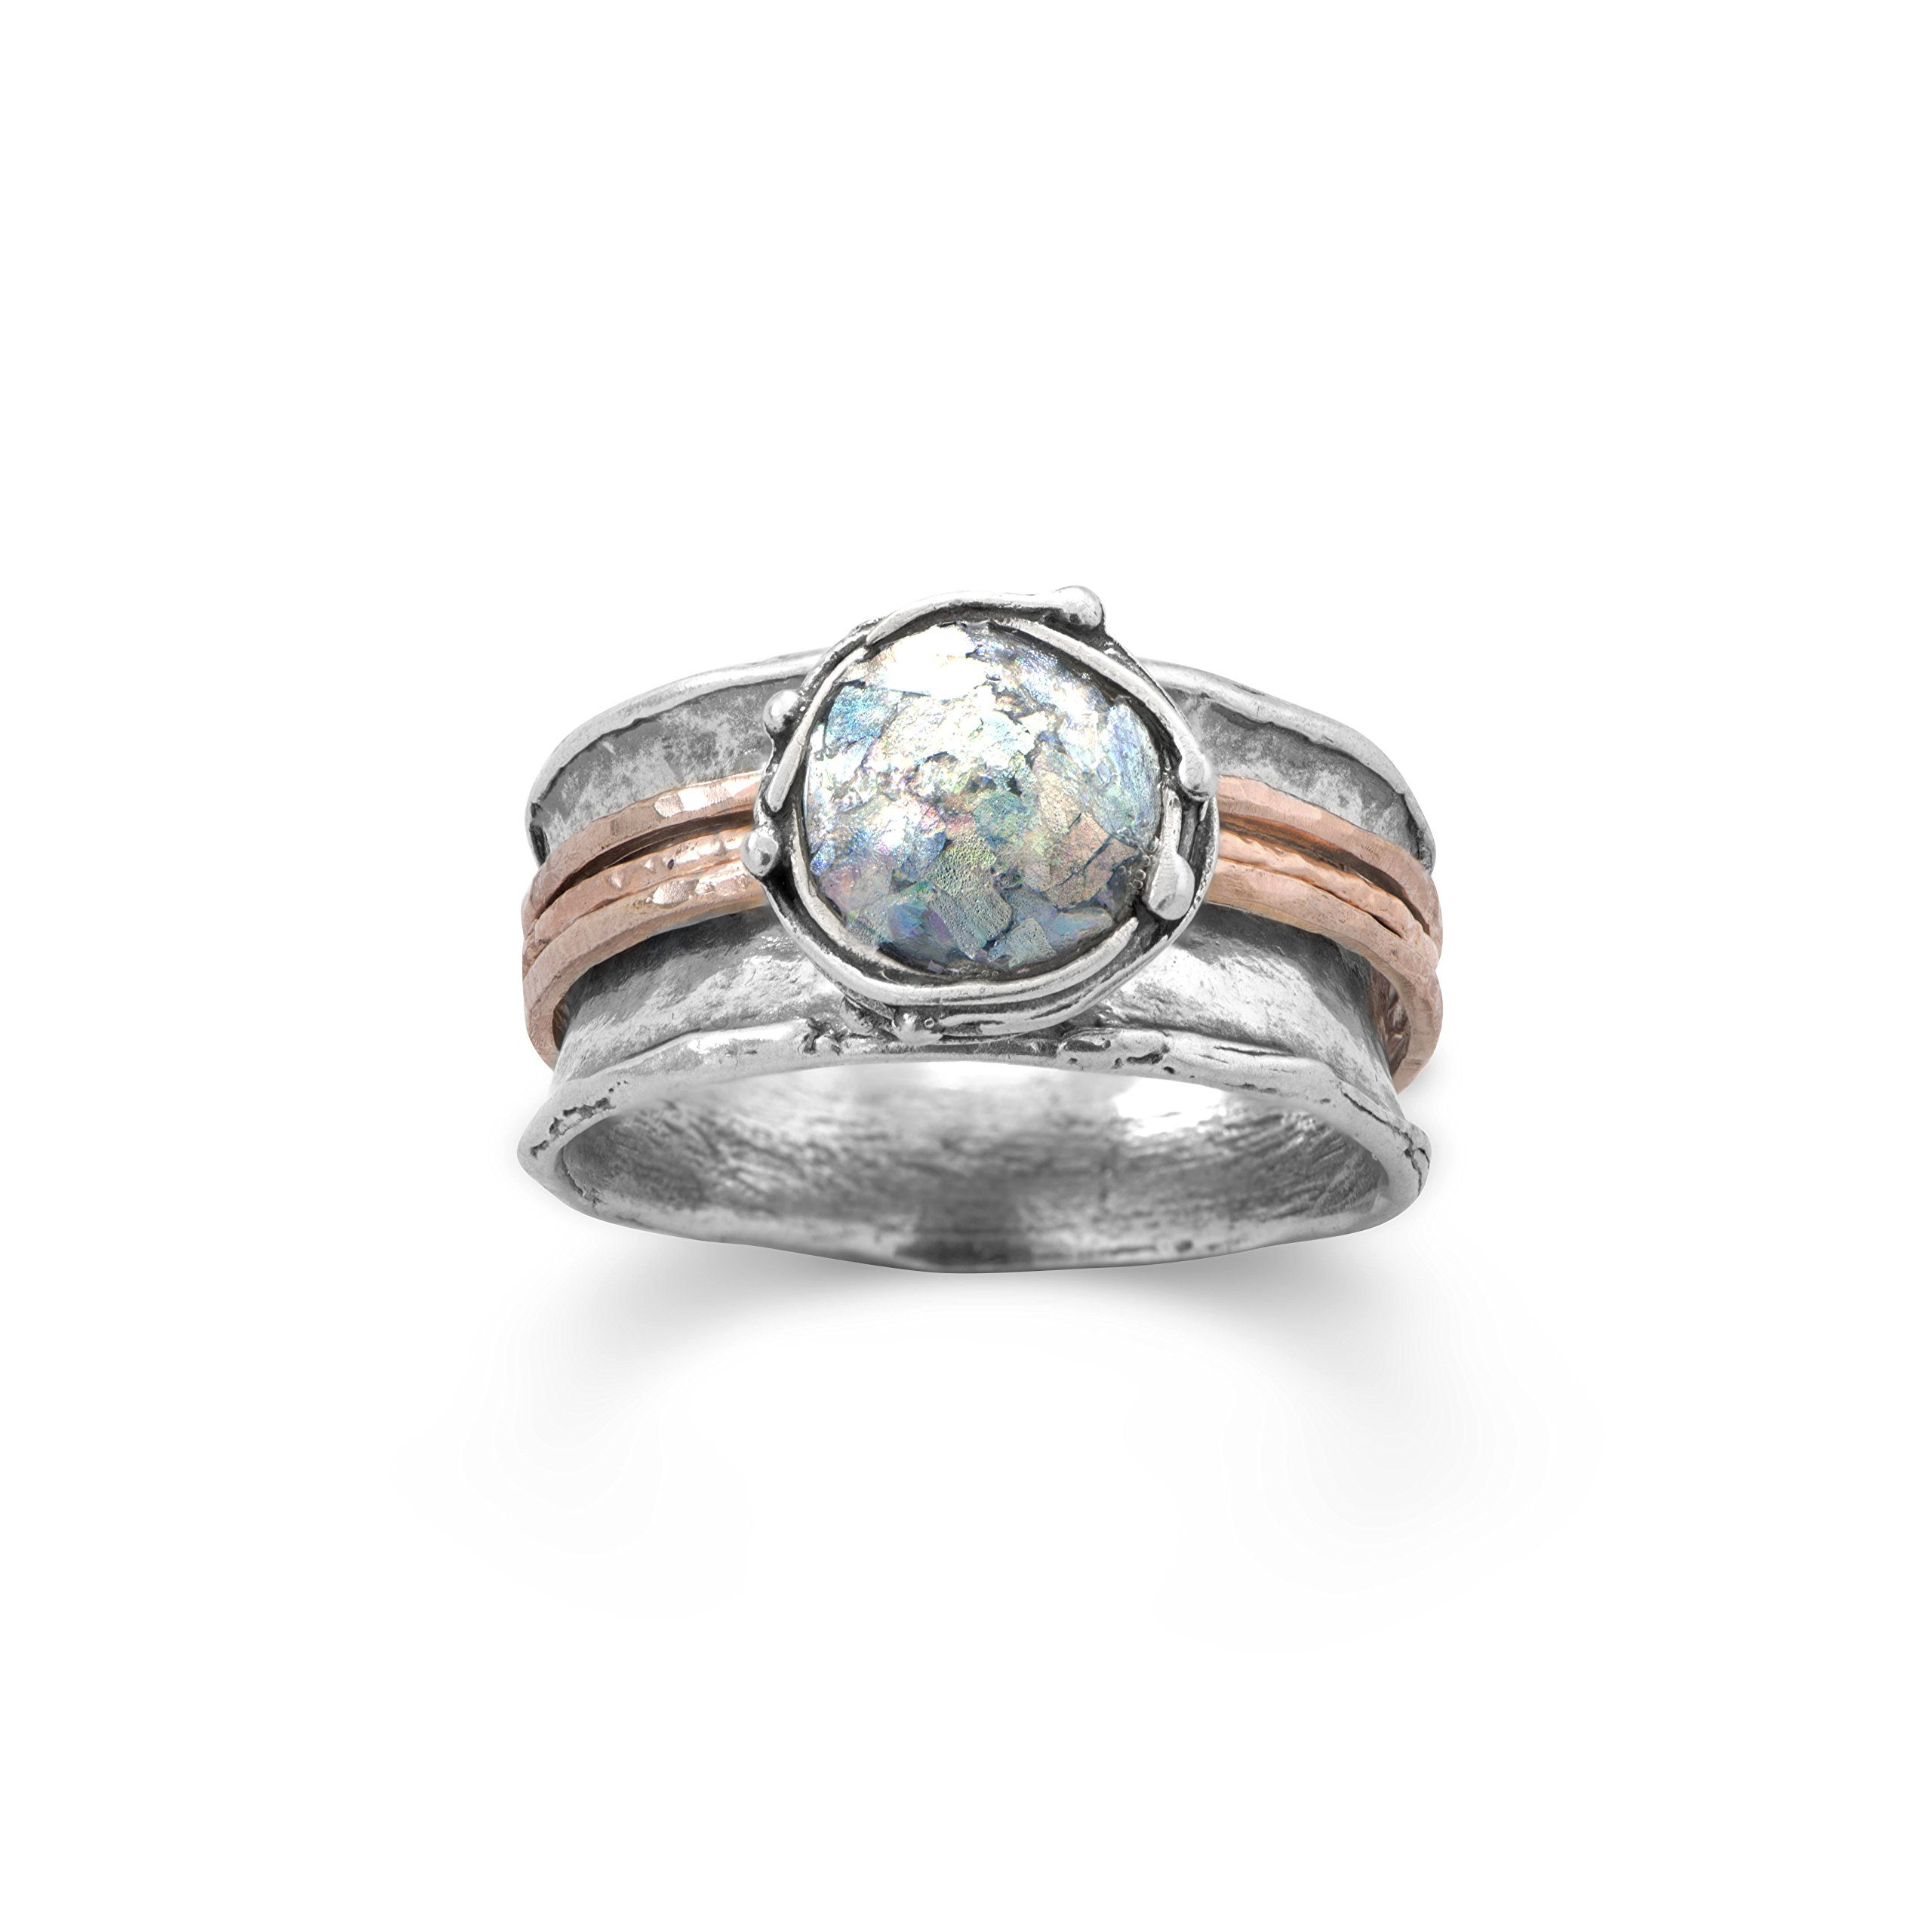 Ancient Roman Glass Ring Round with Rose Gold-plated Bands Sterling Silver by Roman Glass Company